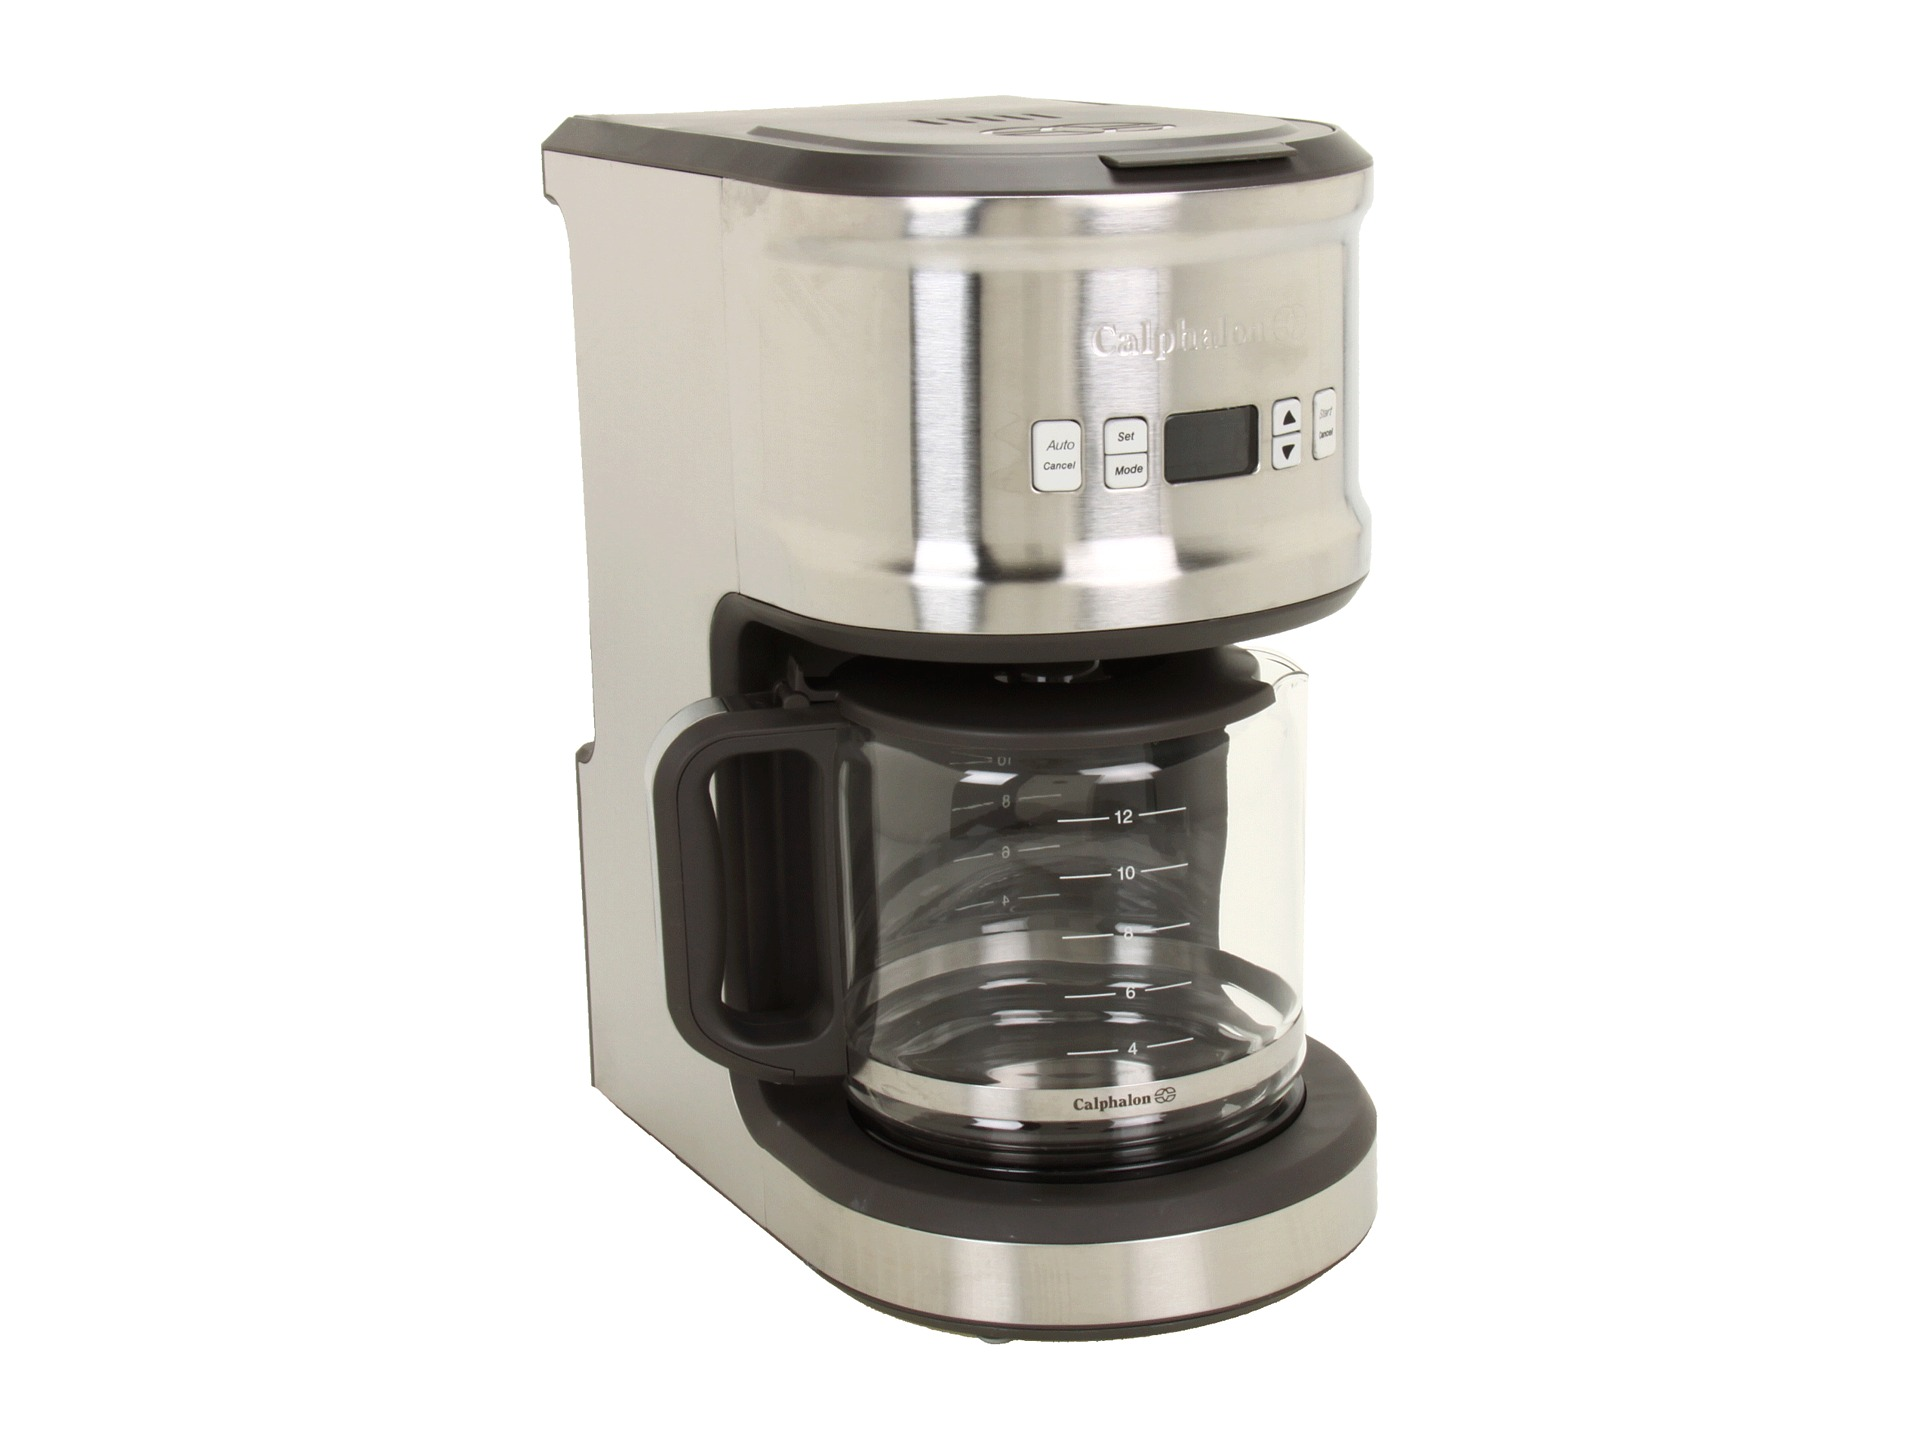 Calphalon 1838803 Quick Brew 12 Cup Coffee Maker Shipped Free at Zappos